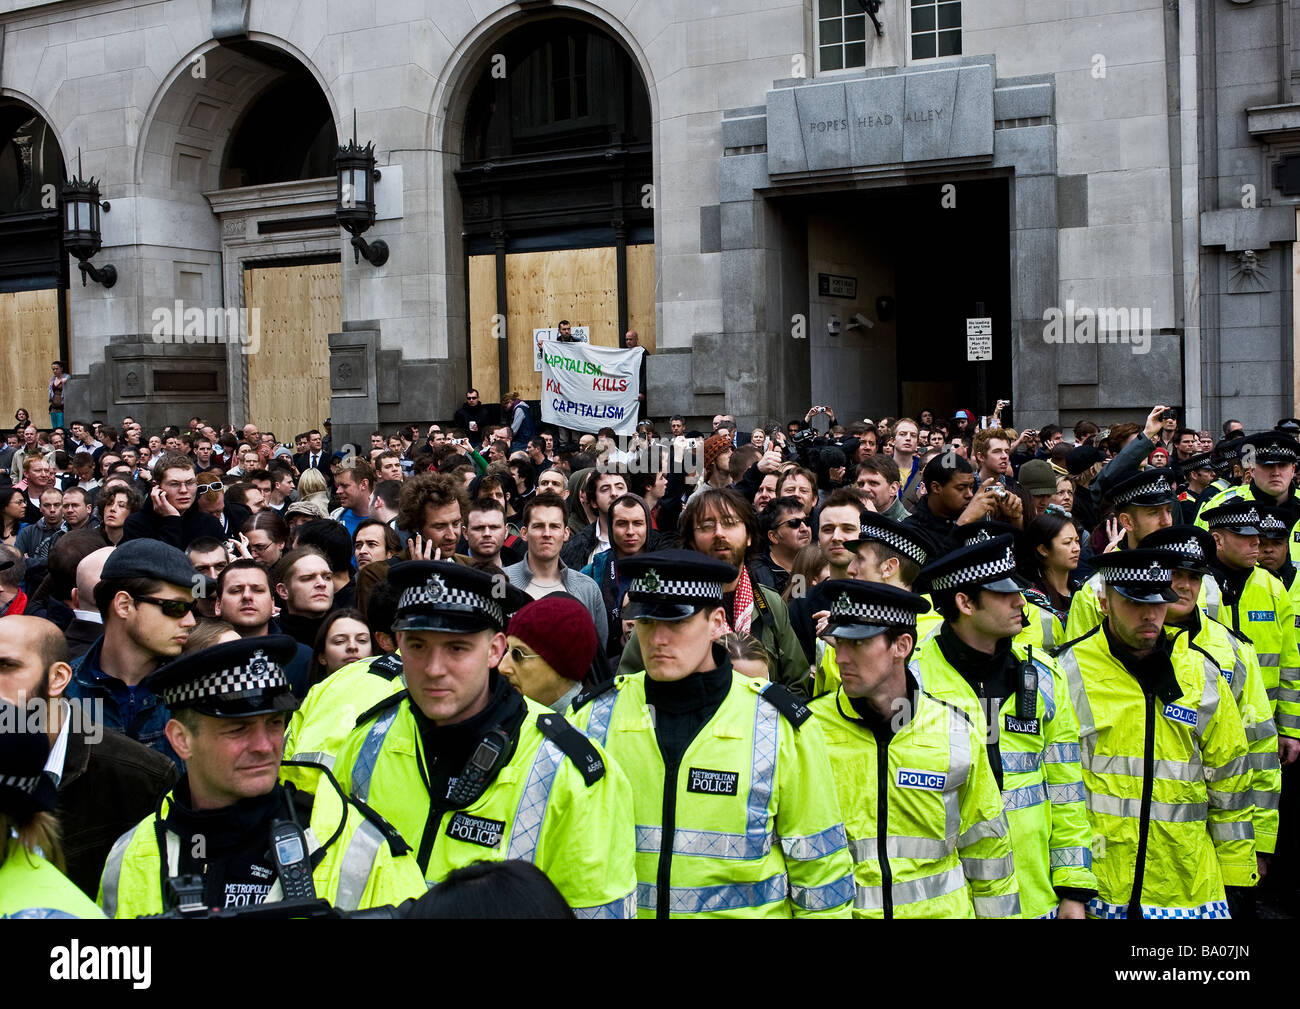 Metropolitan Police cordon at the G20 demonstration in the City of London. - Stock Image